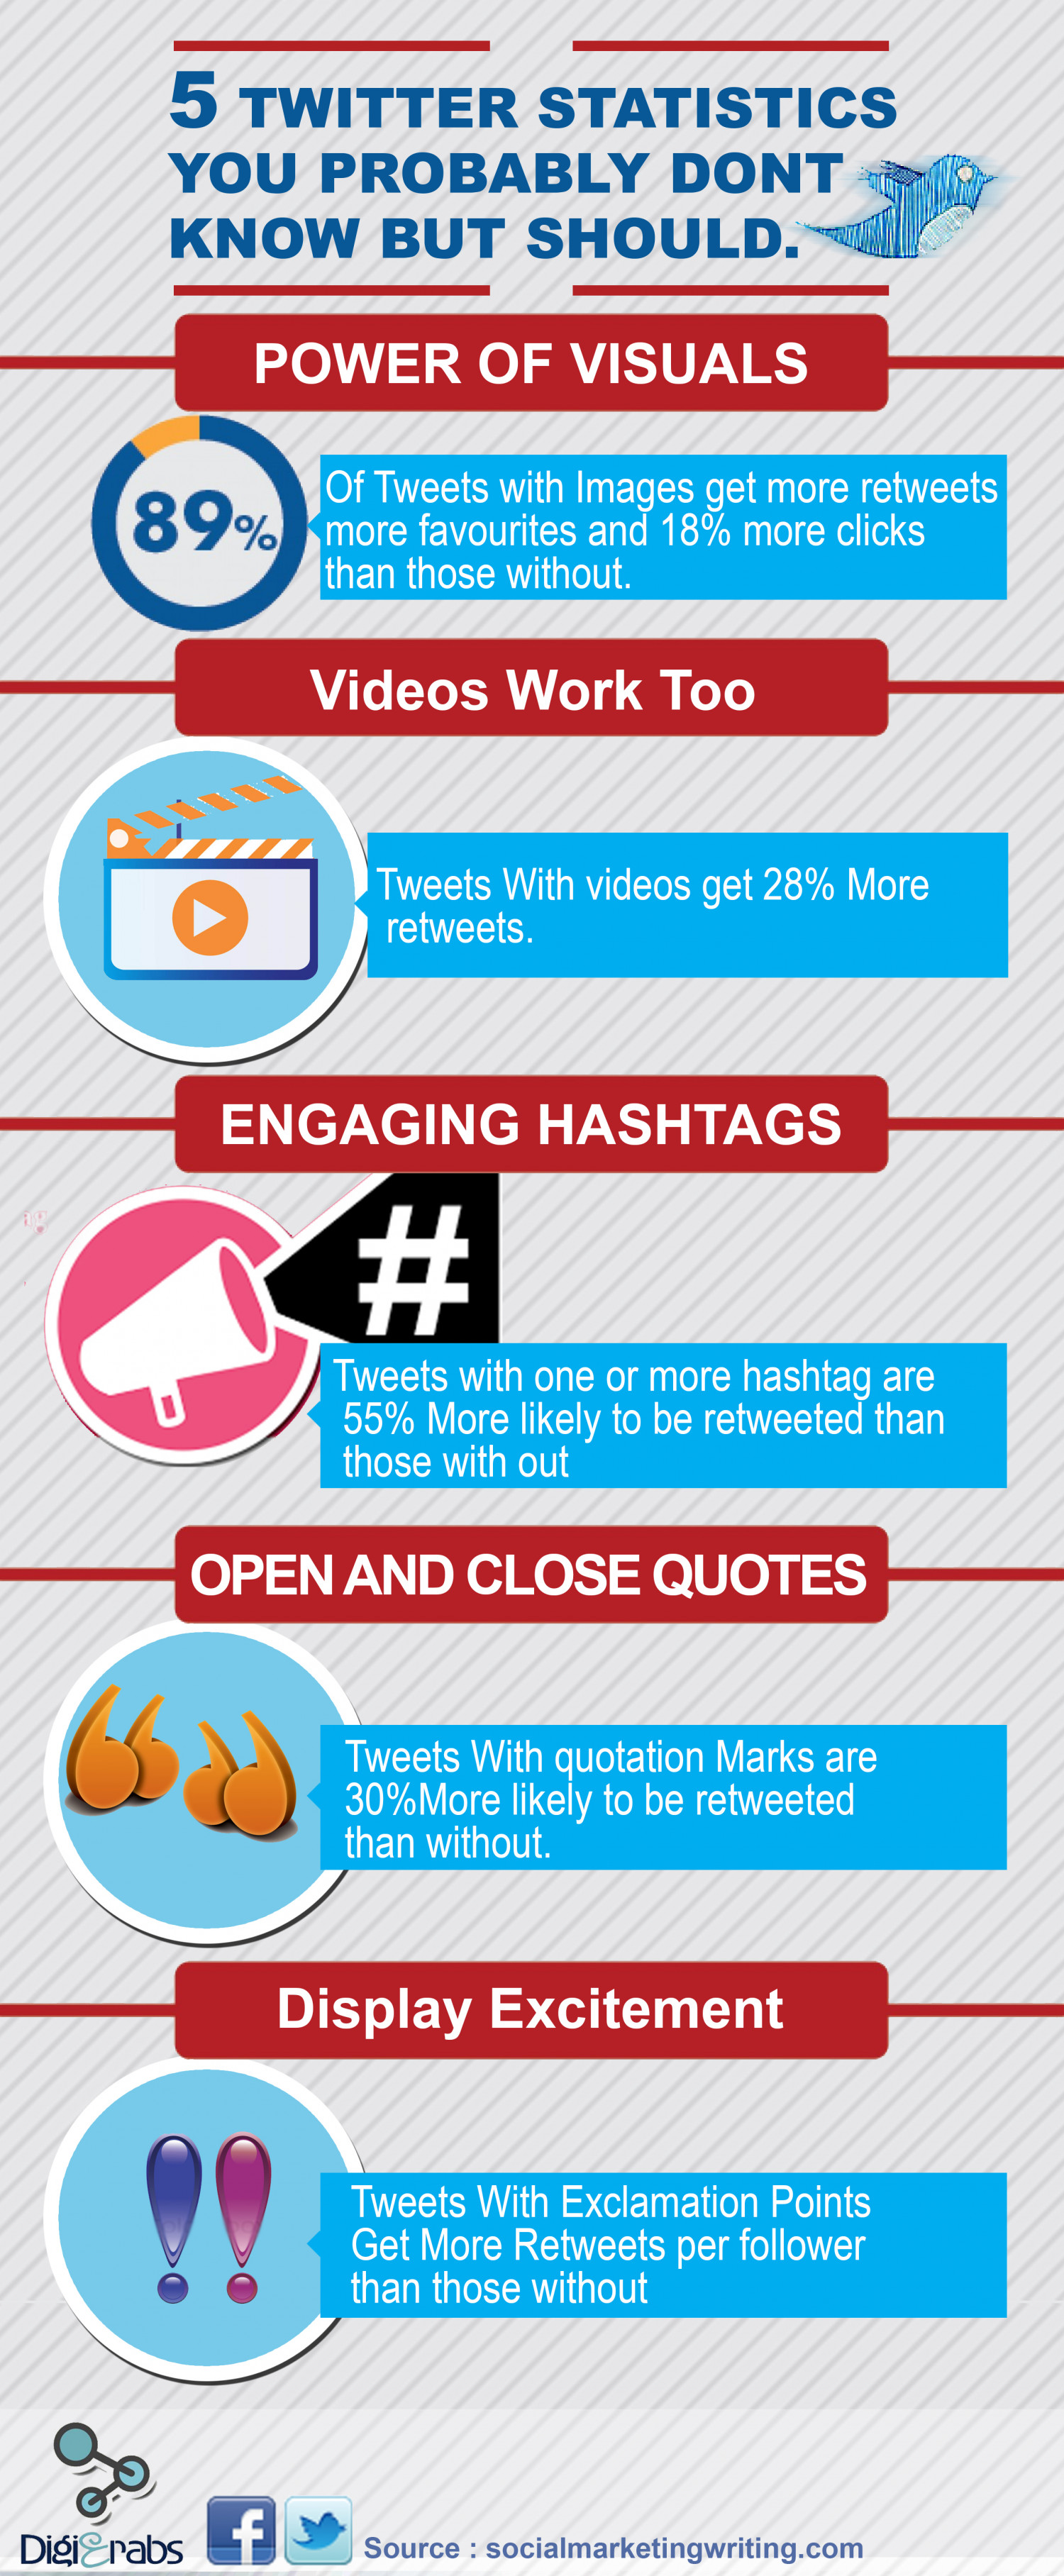 5 Twitter Statistics You Probably Don't Know But Should Infographic